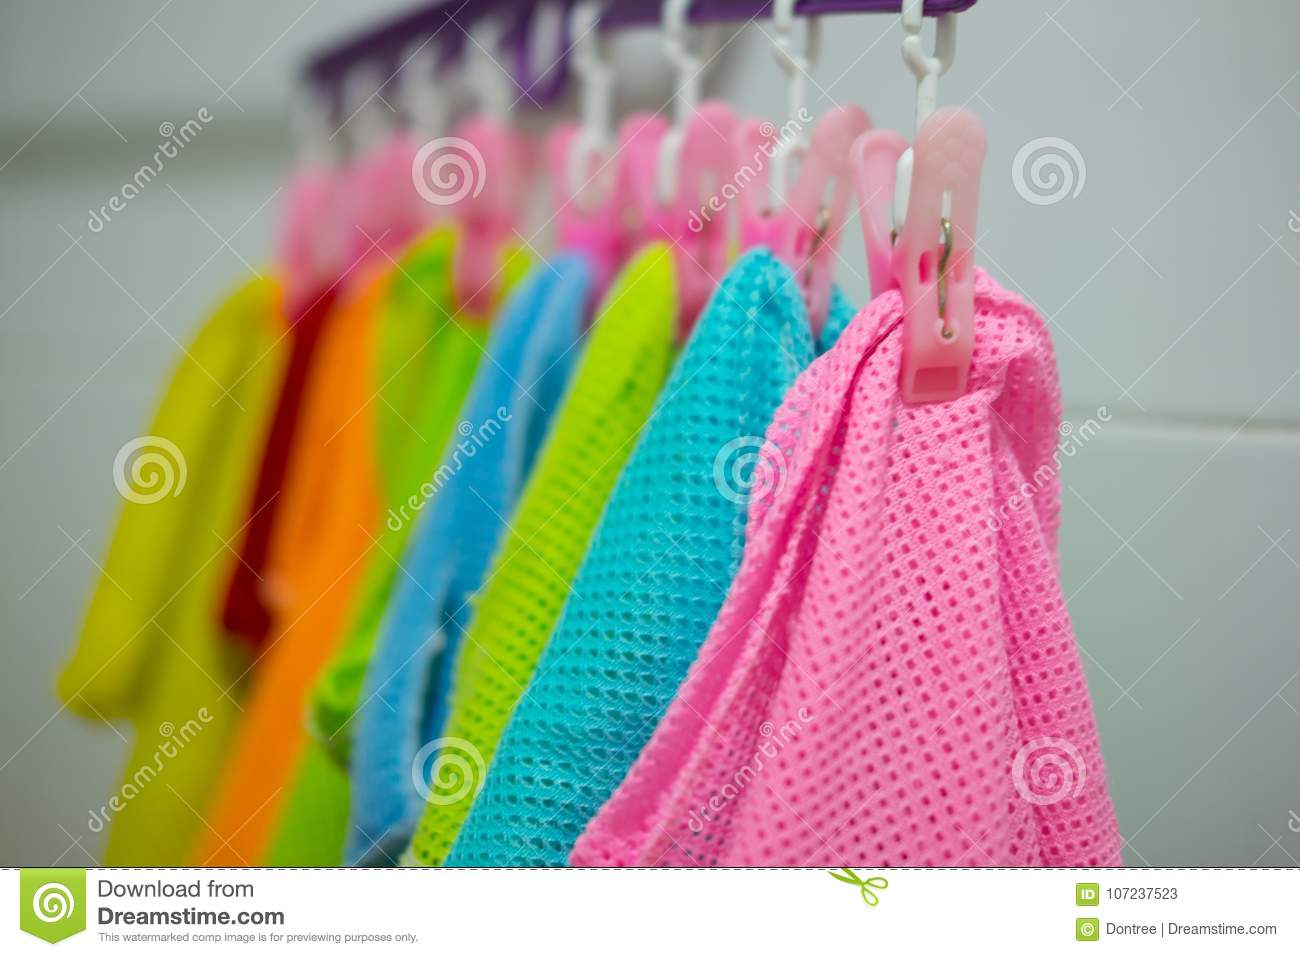 6dfb21a5d Colorful Baby Kids Clothes Hanging On Clothesline Stock Image ...